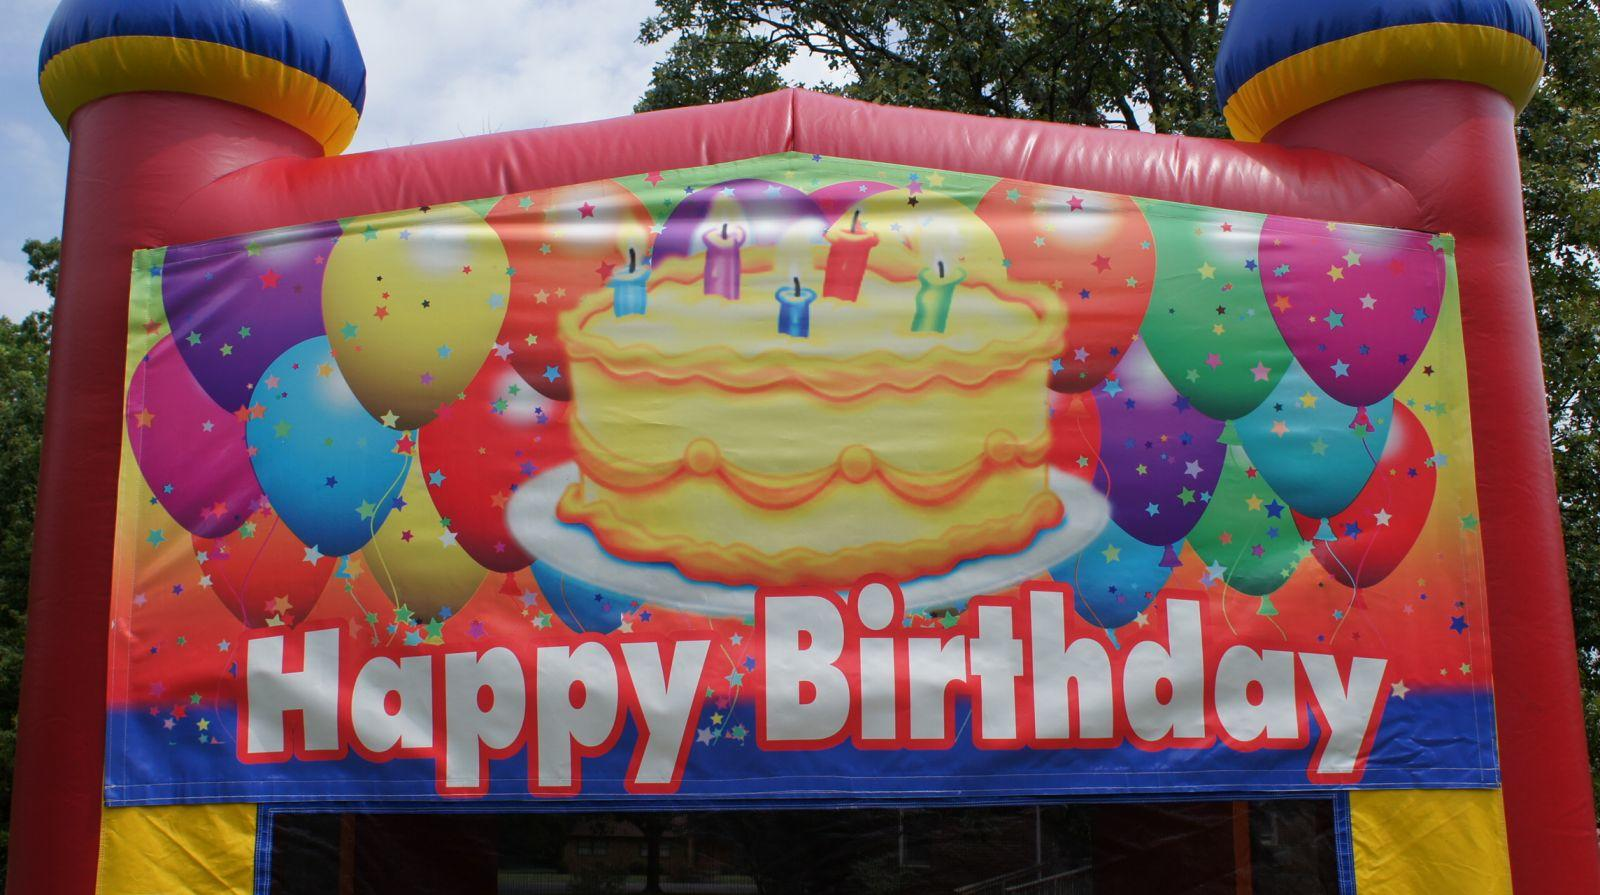 Happy Birthday Bounce House for rent Nashville TN Jumping Hearts Party Rentals